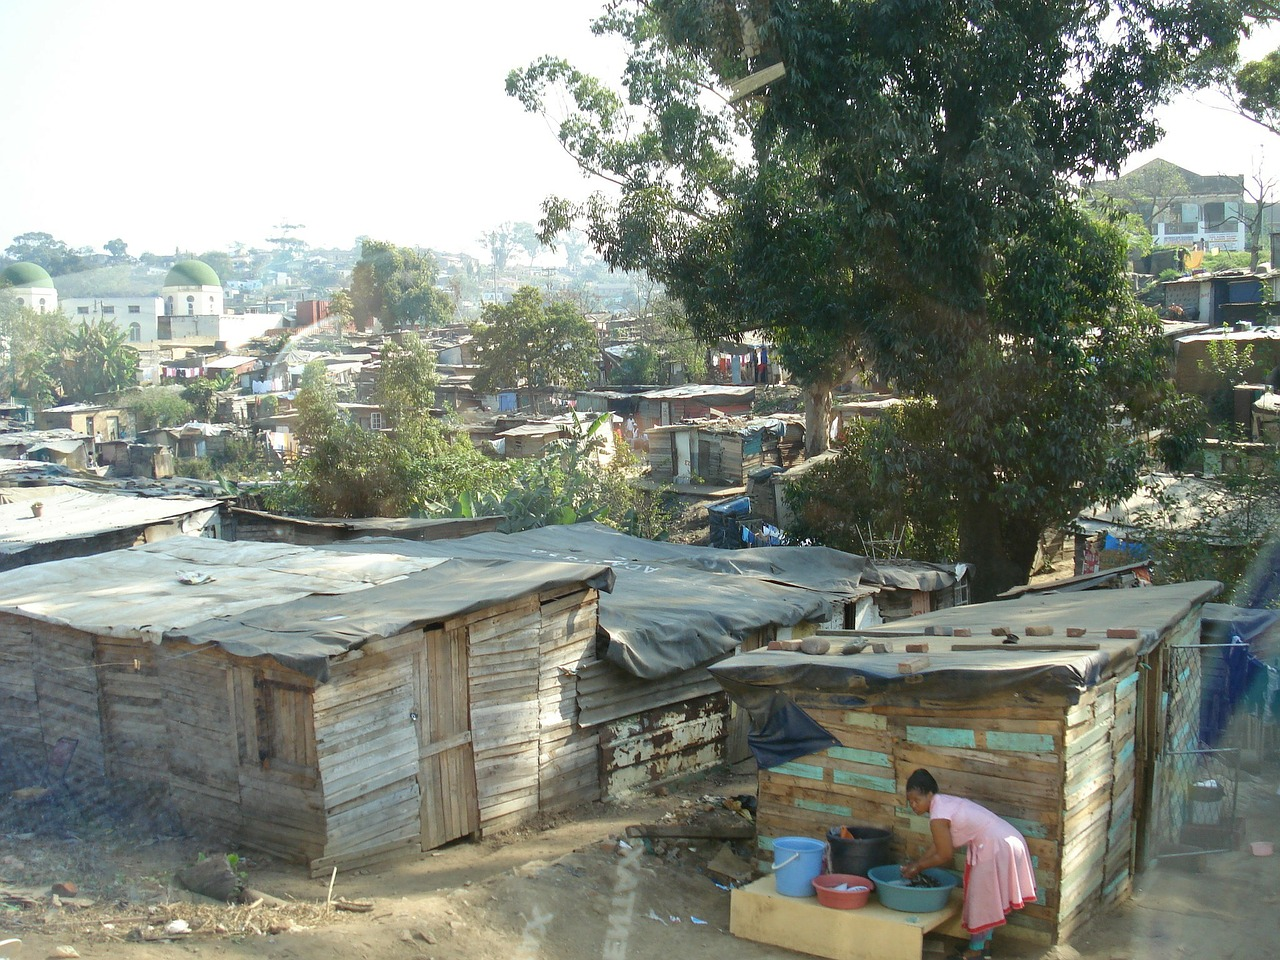 Image of Poverty in Shanty-town like setting